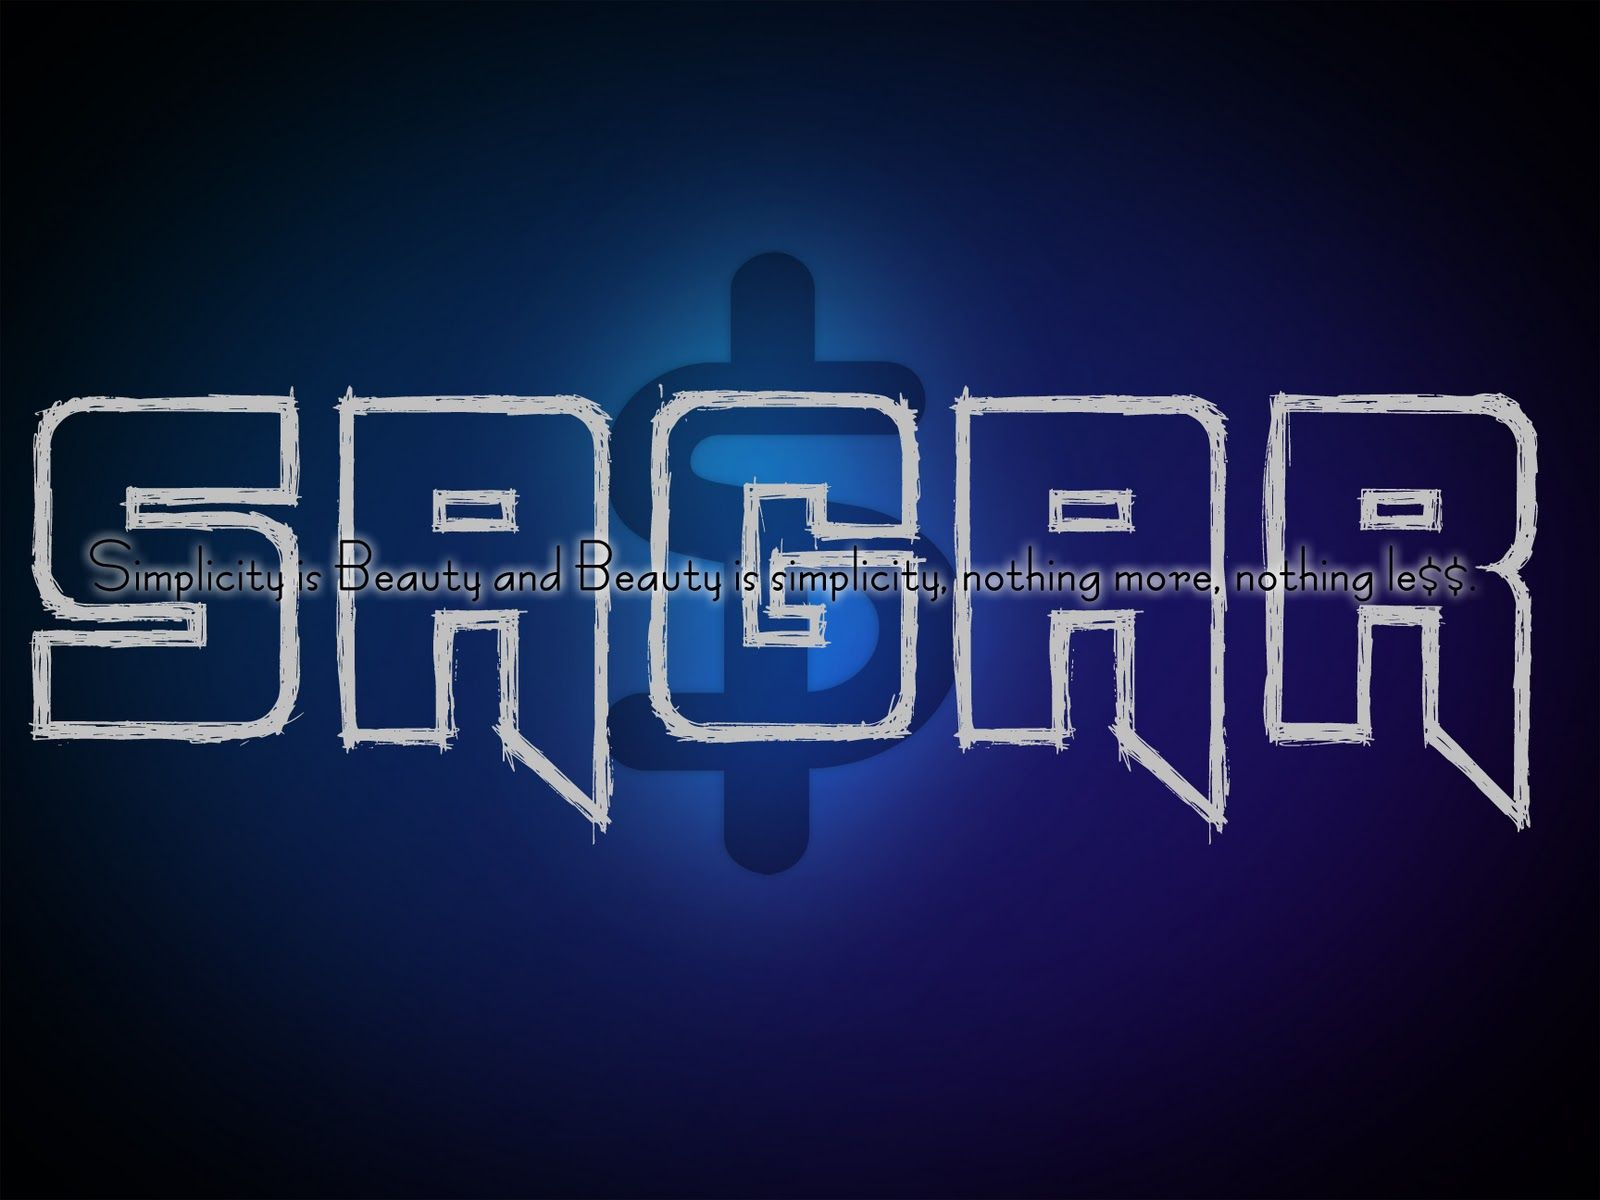 sagar logo | name logo generator - smoothie, summer, birthday | epic